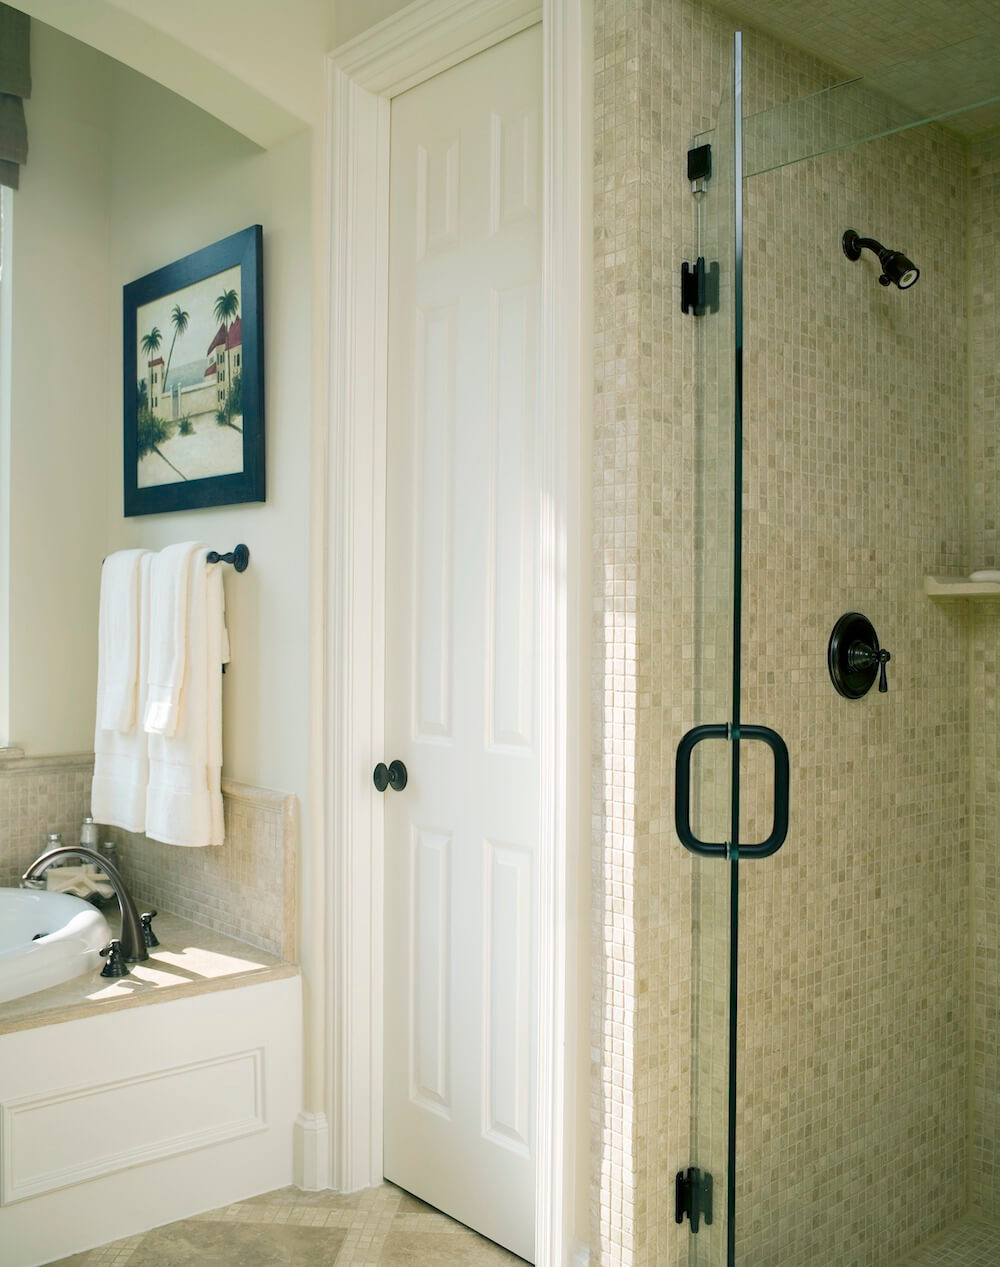 2018 Frameless Shower Door Cost | Frameless Glass Shower Doors Cost